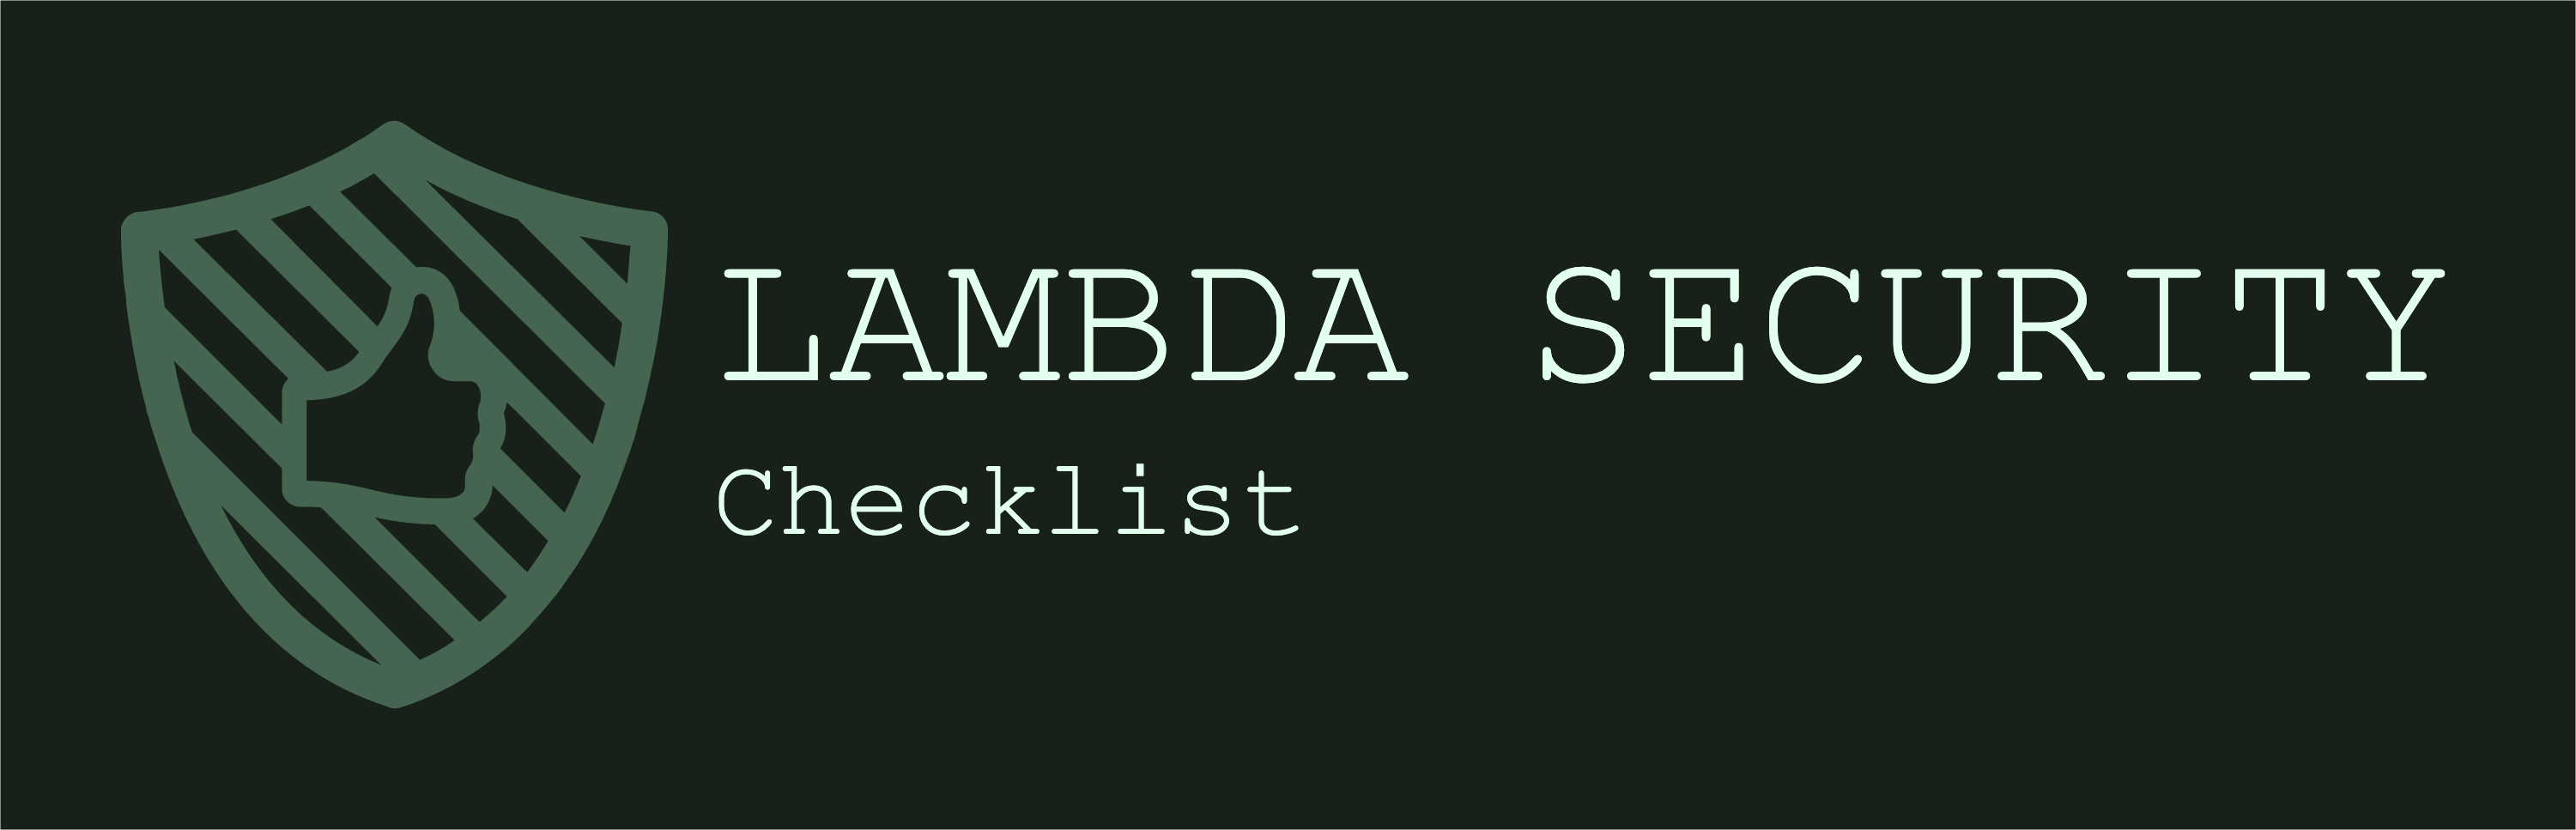 Lambda Security Checklist